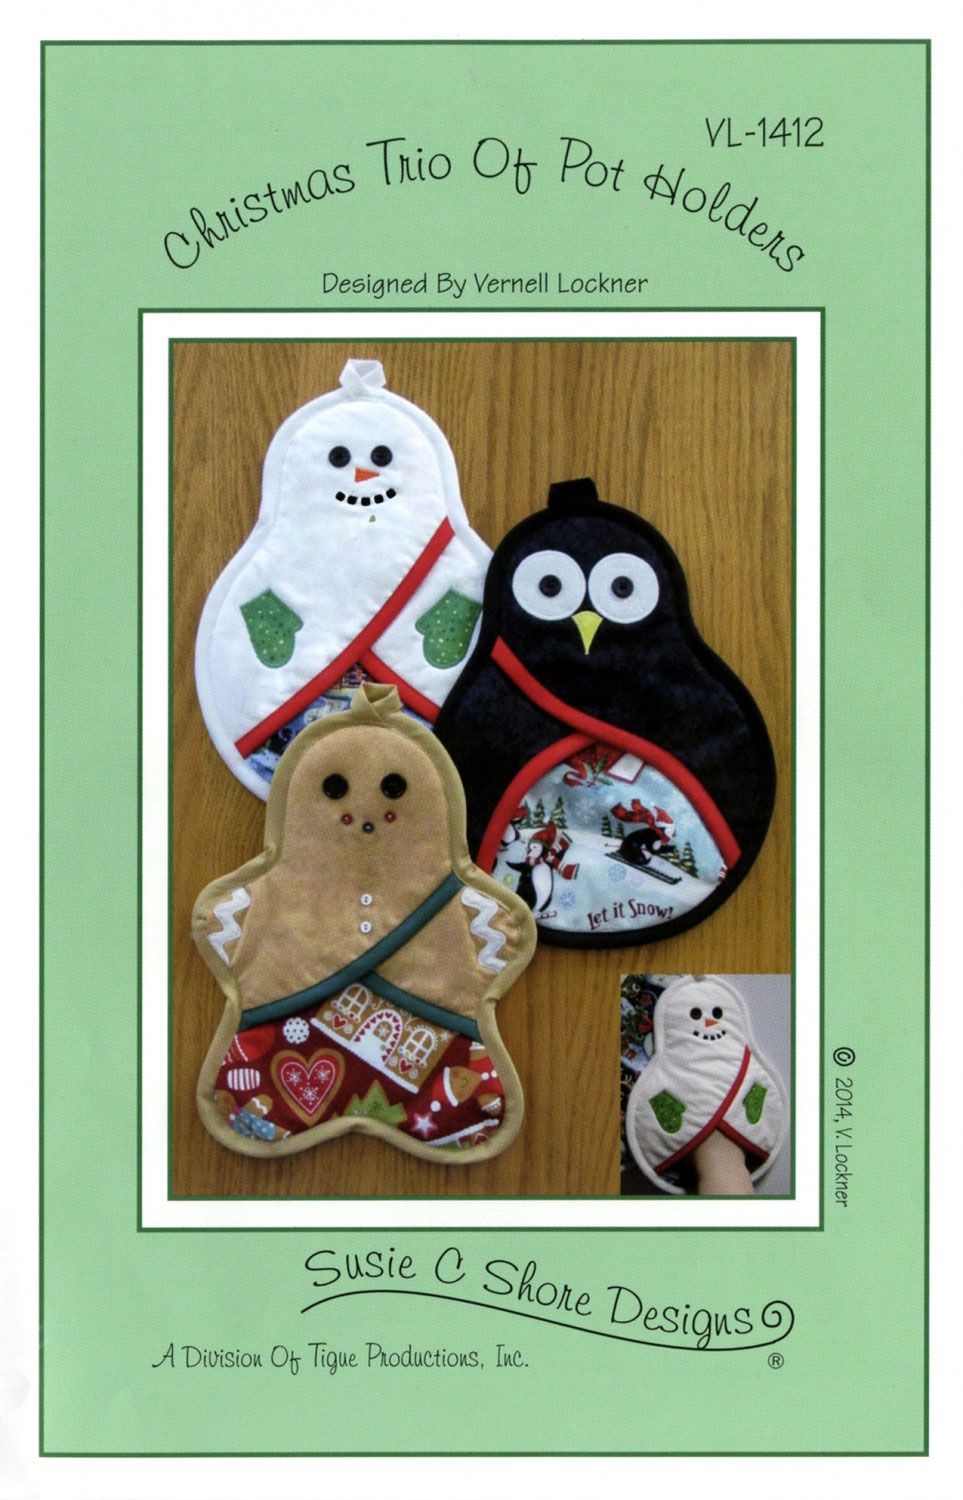 Christmas-Trio-of-Pot-Holders-sewing-pattern-Susie-C-Shore-front.jpg